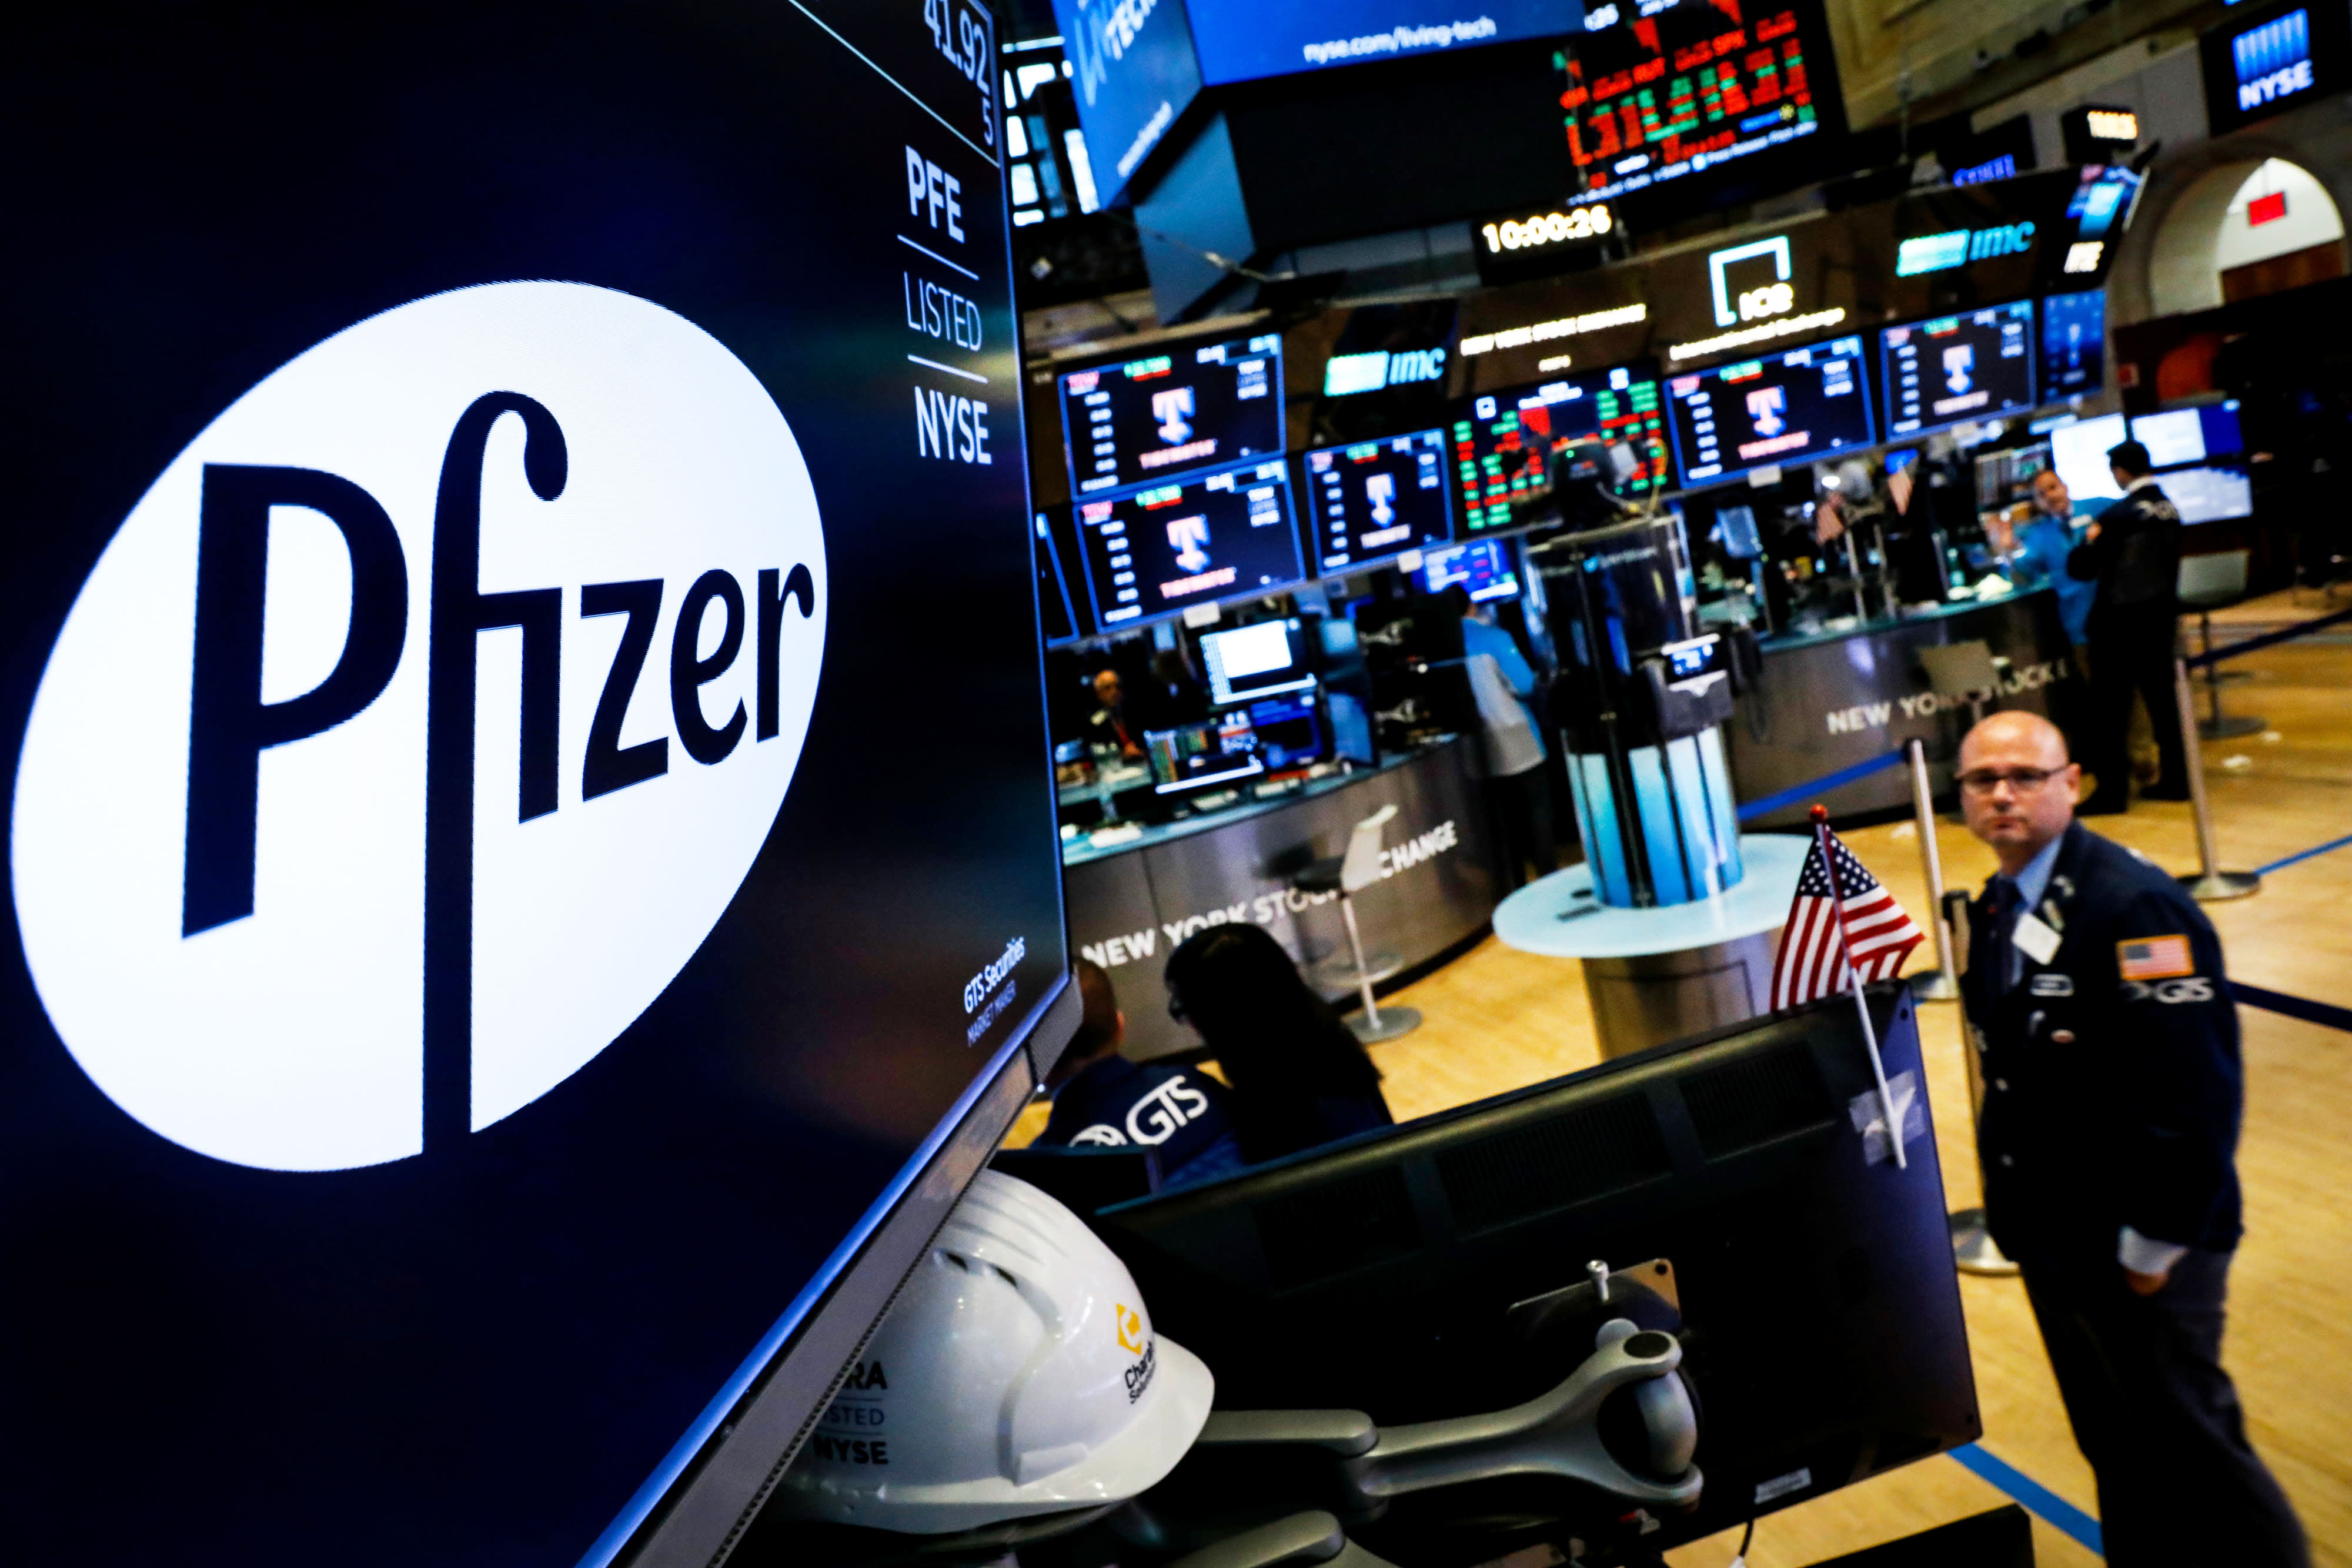 Pfizer Wants To Expand Human Trials Of Coronavirus Vaccine To Thousands Of People By September Ceo Says